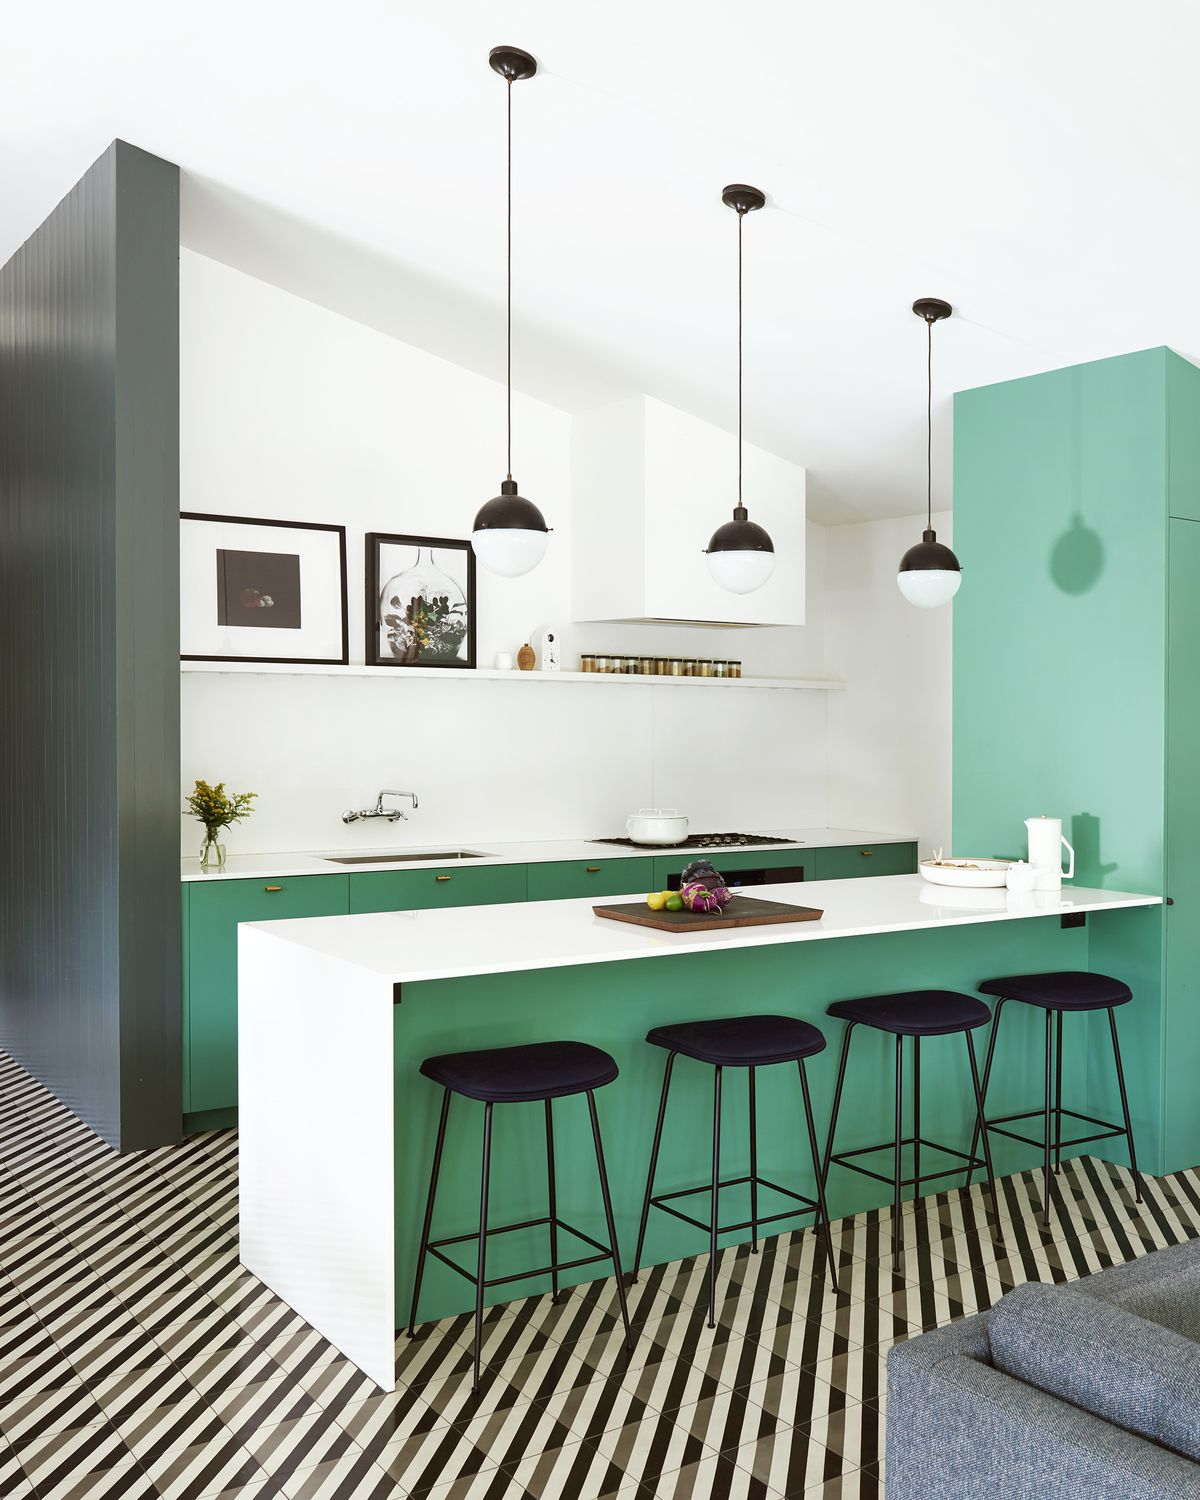 A sparse modern kitchen with clean lines and exposed shelving. There is a kitchen island with bright teal accent colors attached to a teal wall. Under the island sit four black stools. The floor is tiled with the same diagonally striped, black and white print that runs through the entire house.